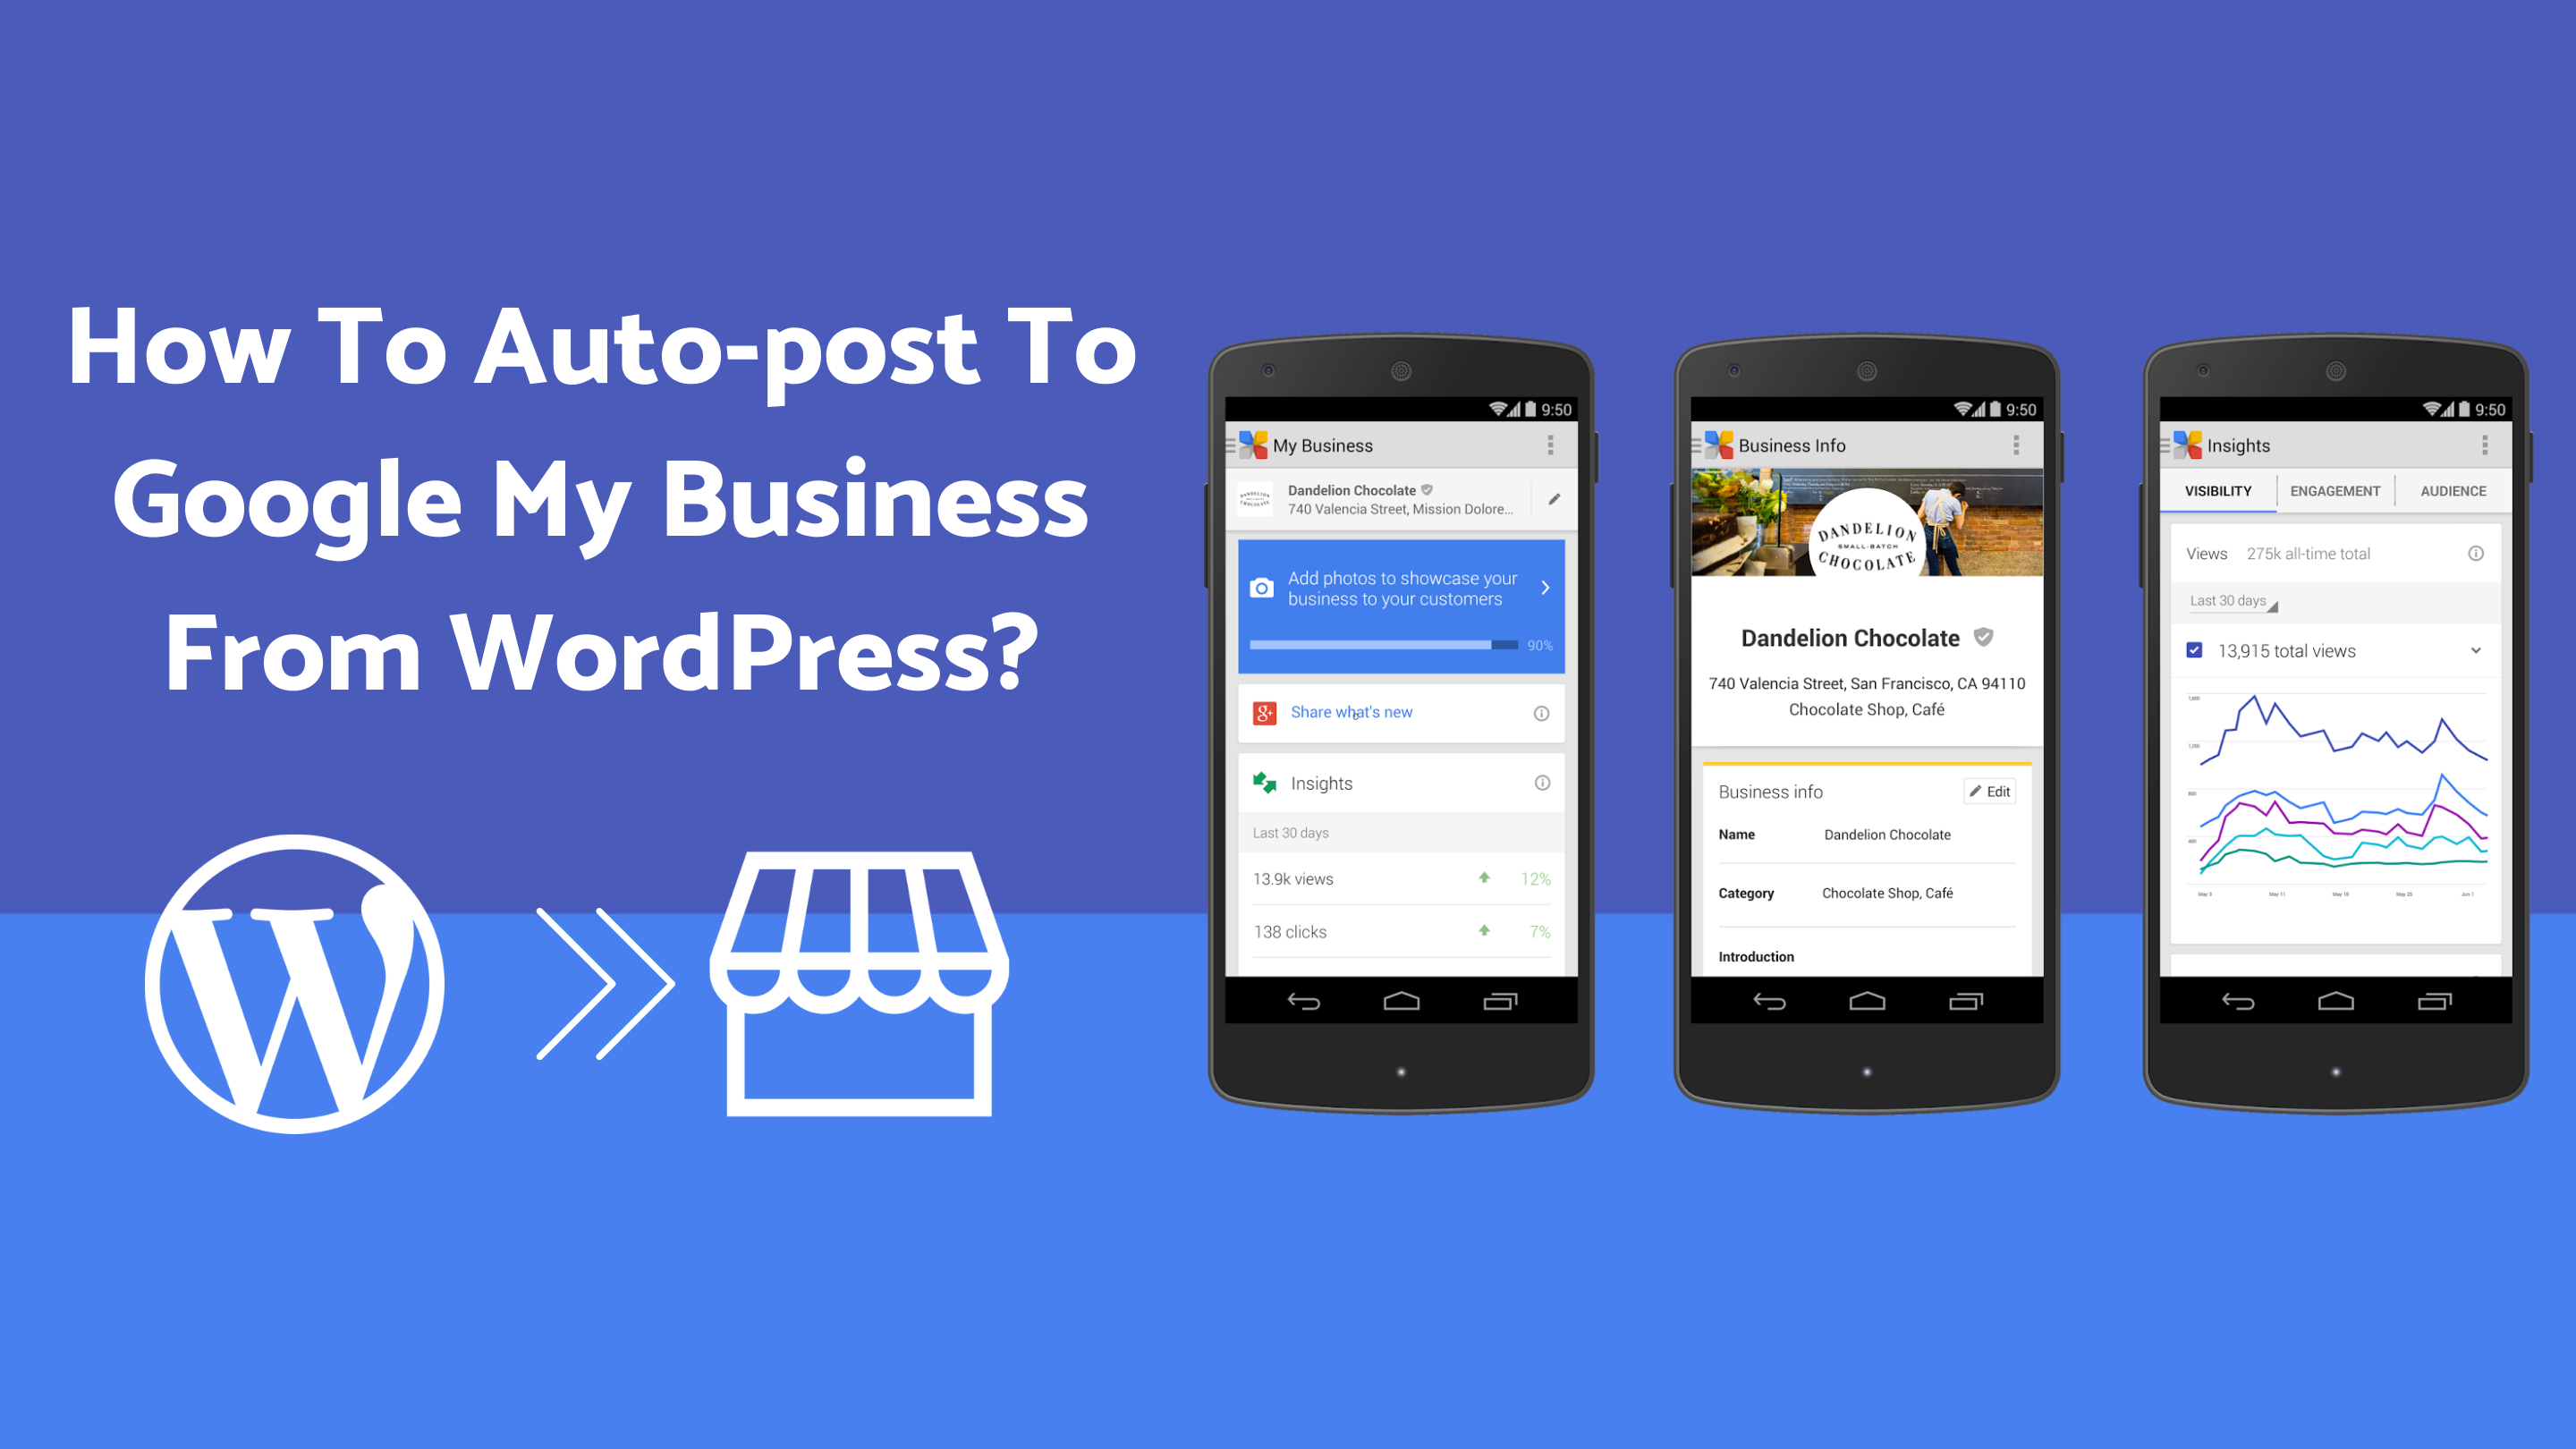 How To Auto-Post To Google My Business From WordPress [A Complete Guide]